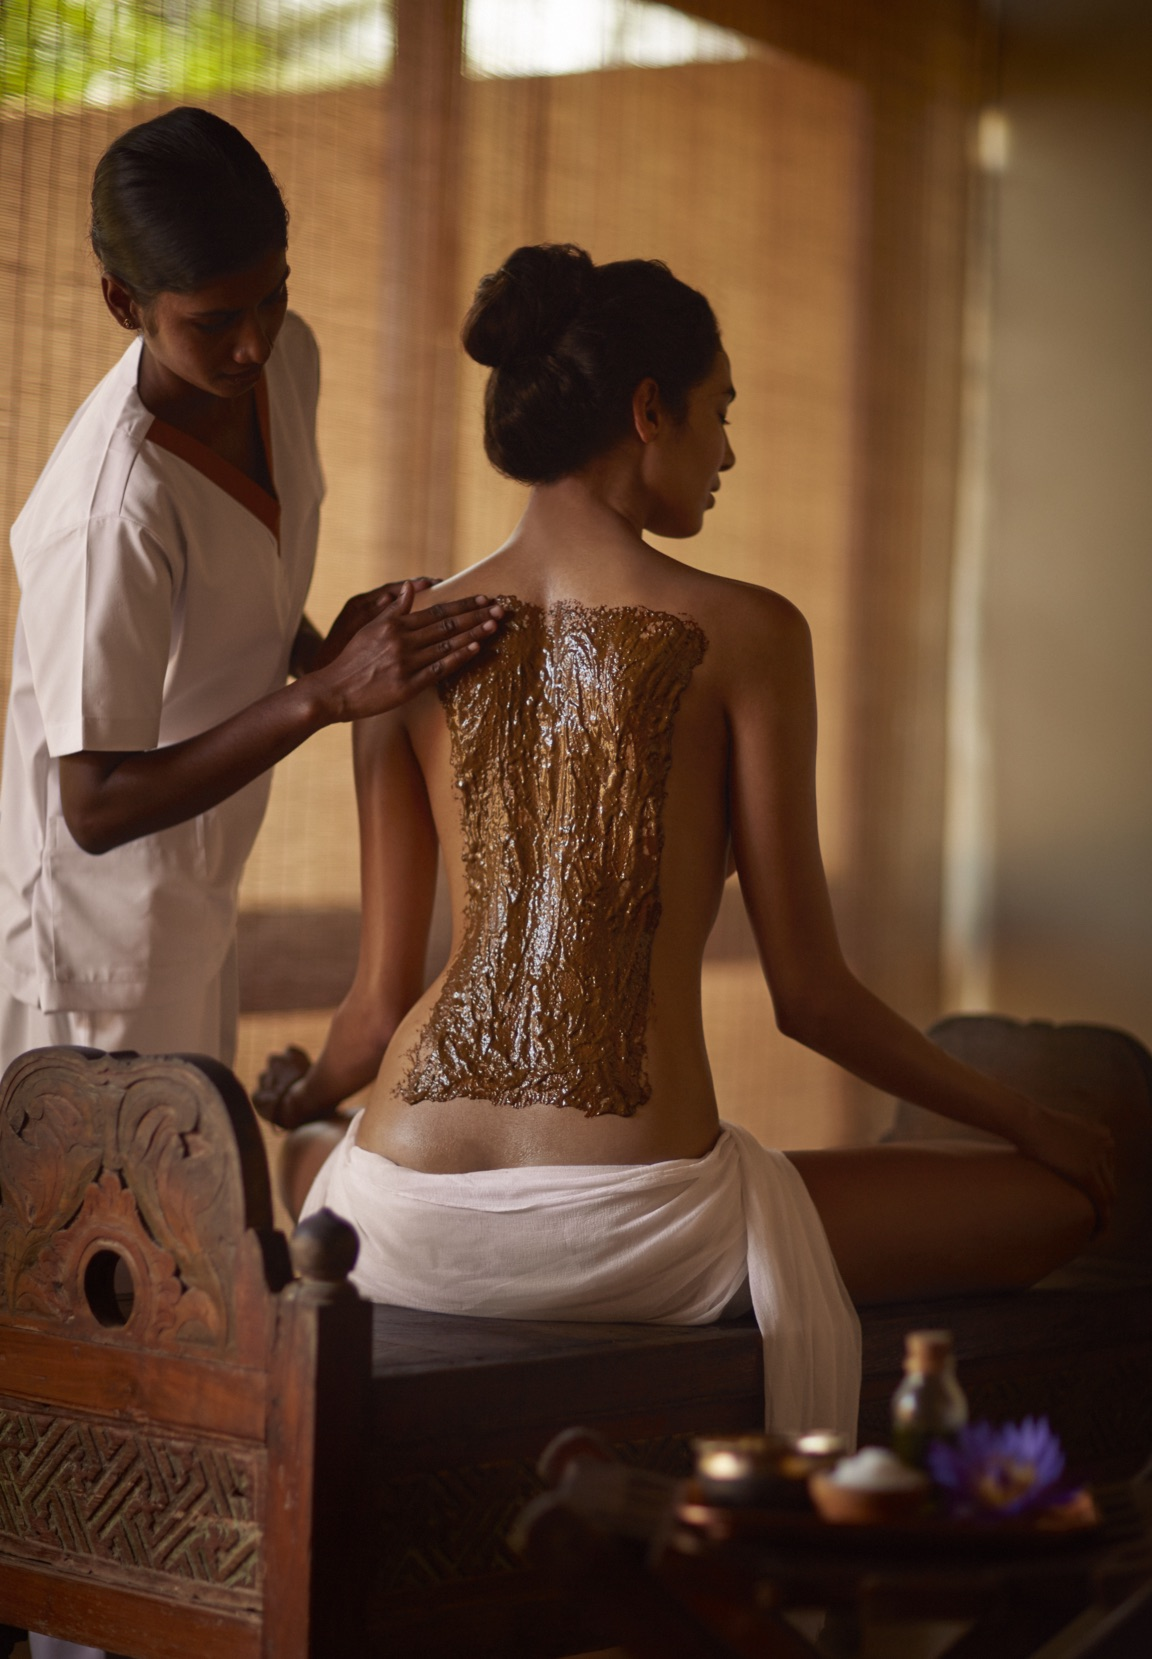 invite-to-paradise-sri-lanka-specialists-experts-travel-agent-tour-operator-jetwing-viluyana-hotel-cultural-triangle-spa-bodywrap.jpg